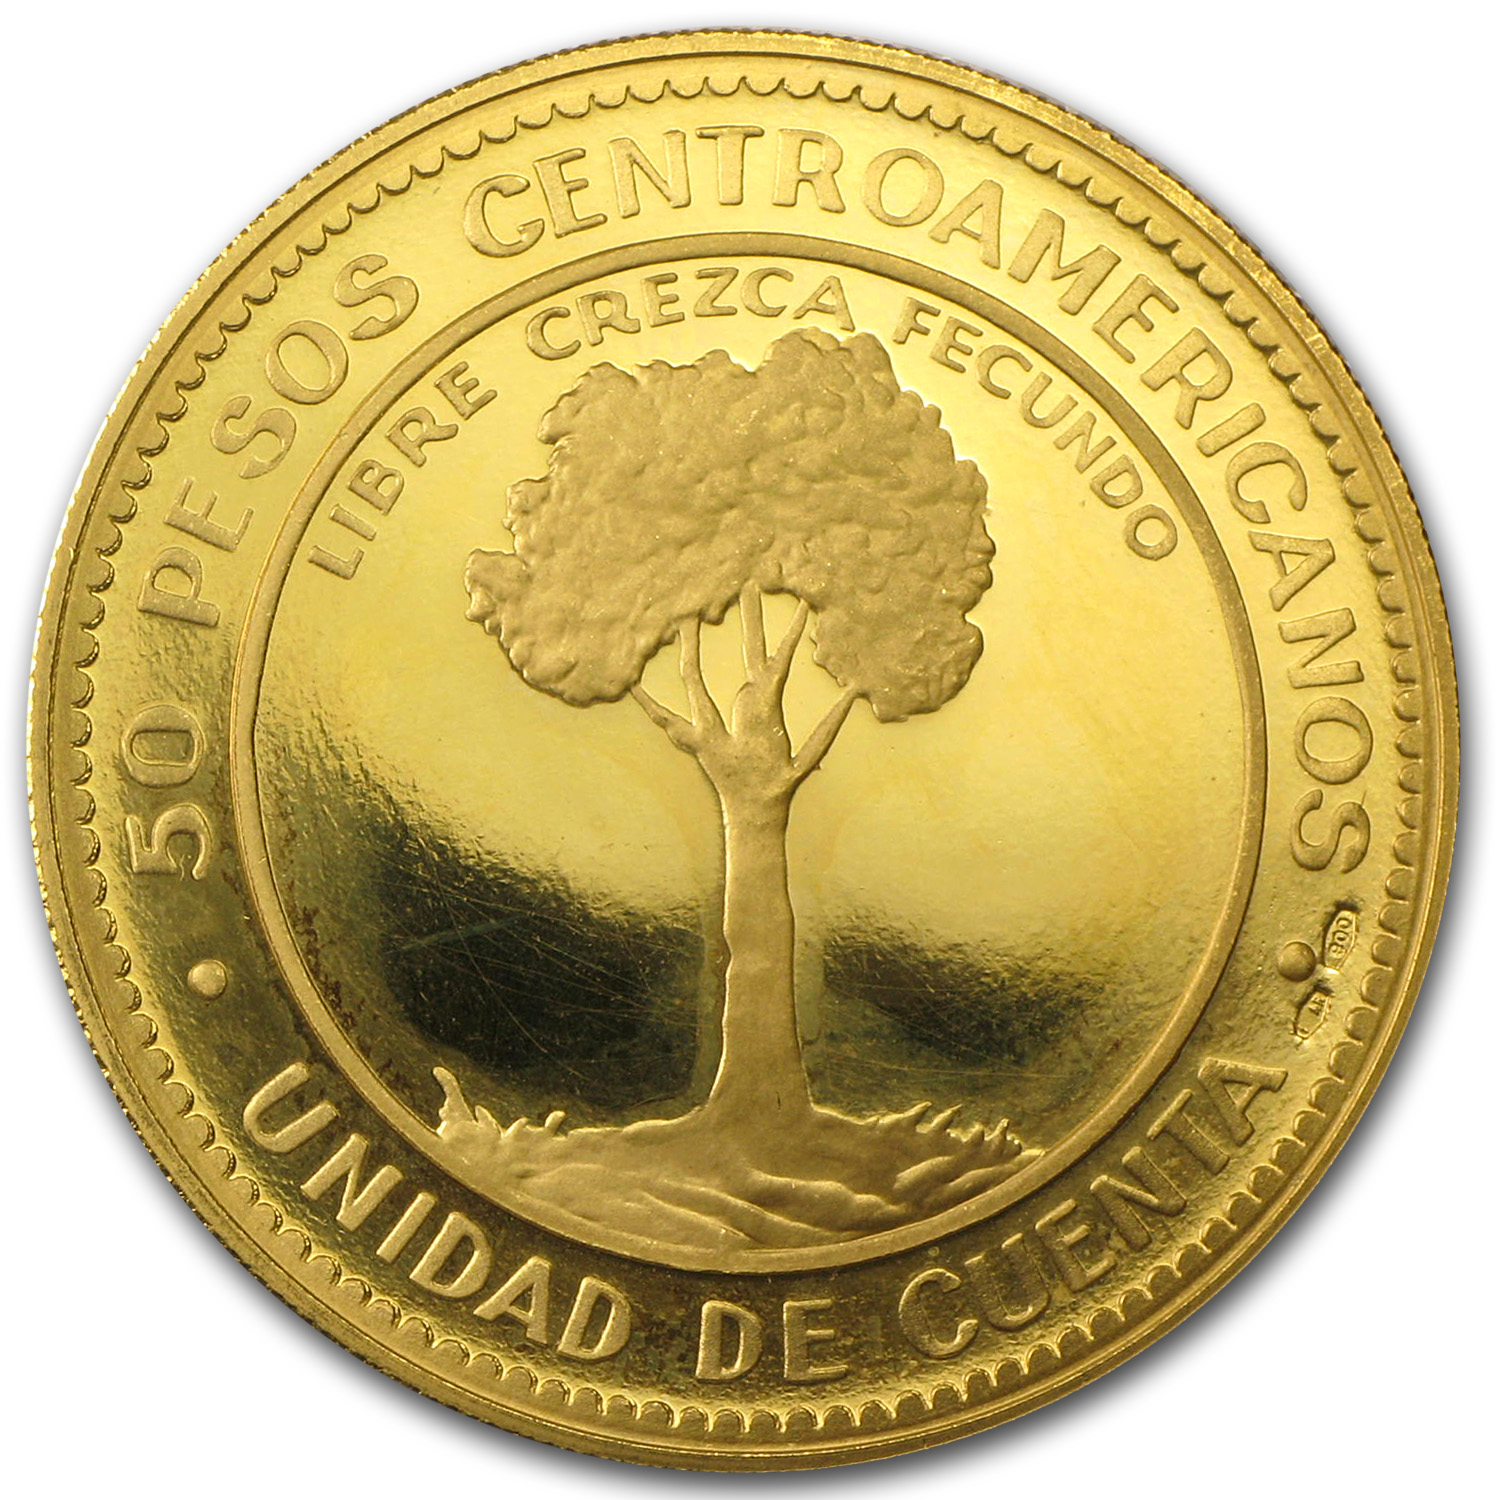 Central America Gold 50 Pesos Economic Integration - AGW .5787